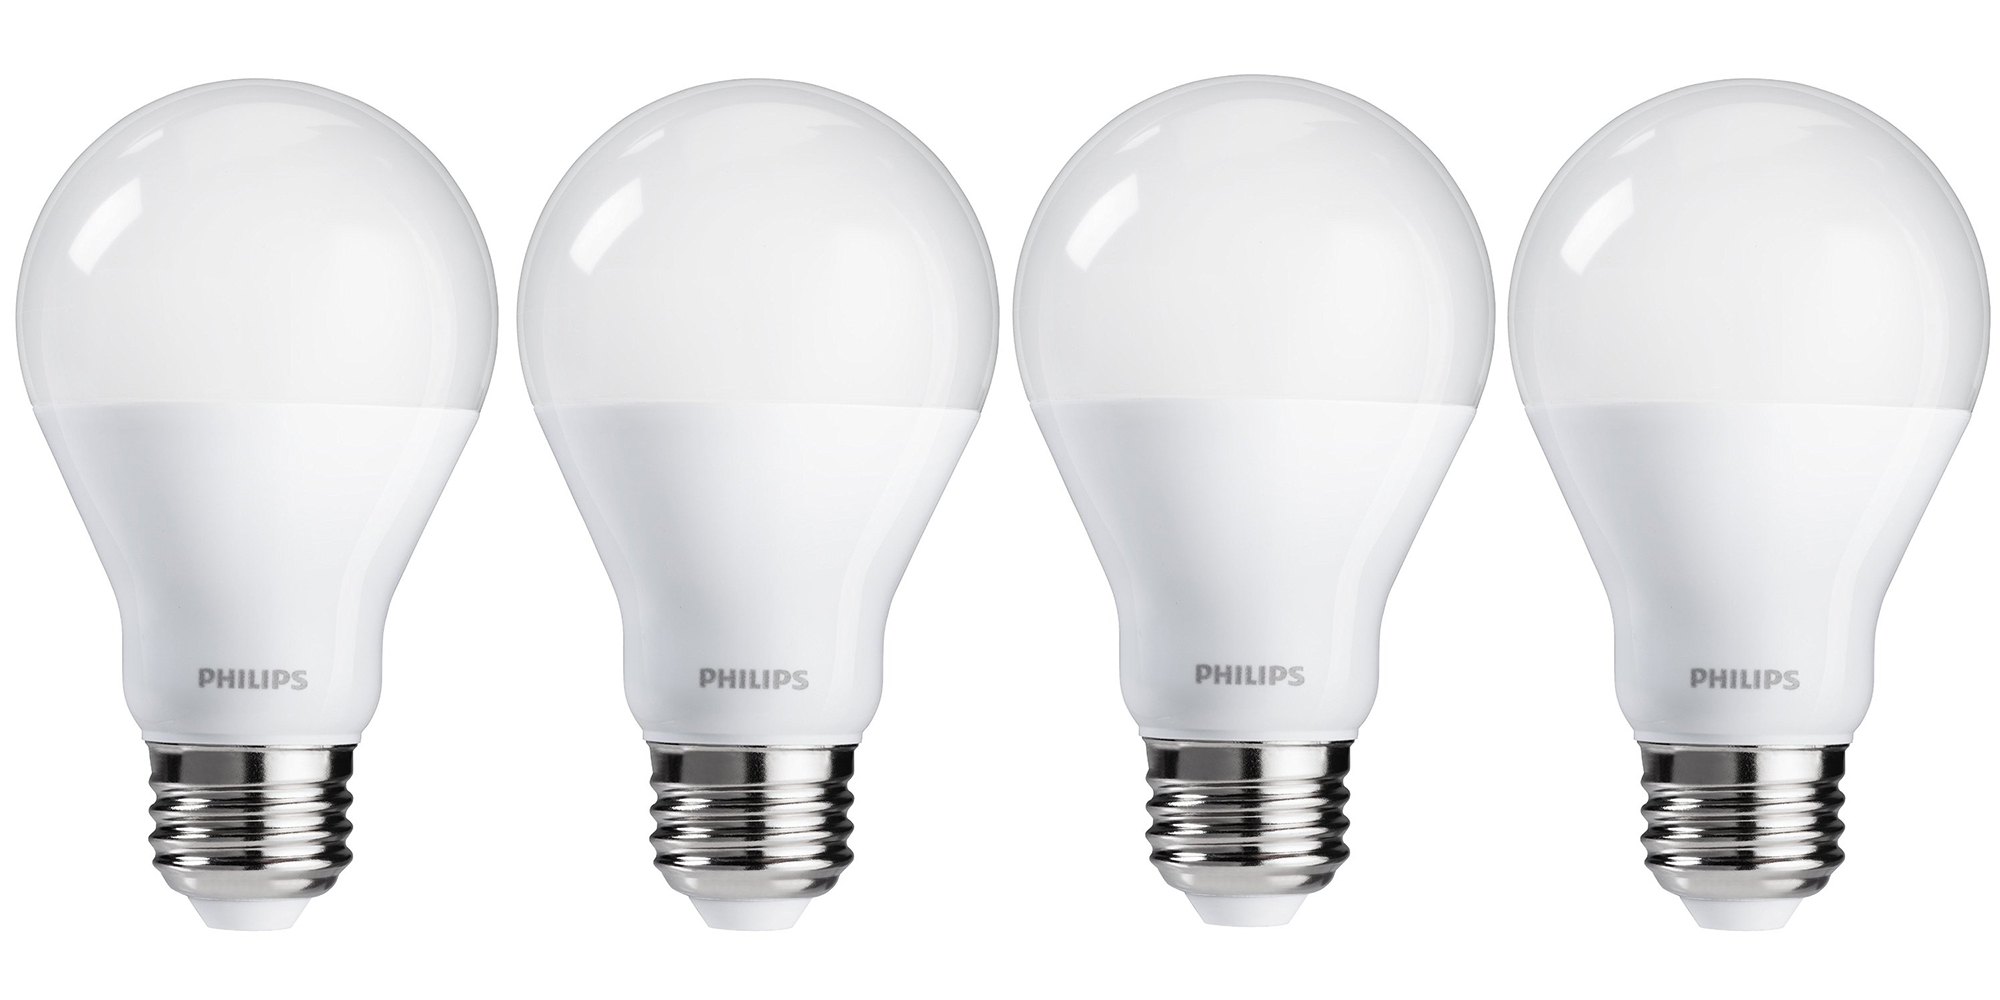 Green Deals Save Up To 38 On Philips Led Light Bulbs At Home Depot Deals From 20 More Electrek